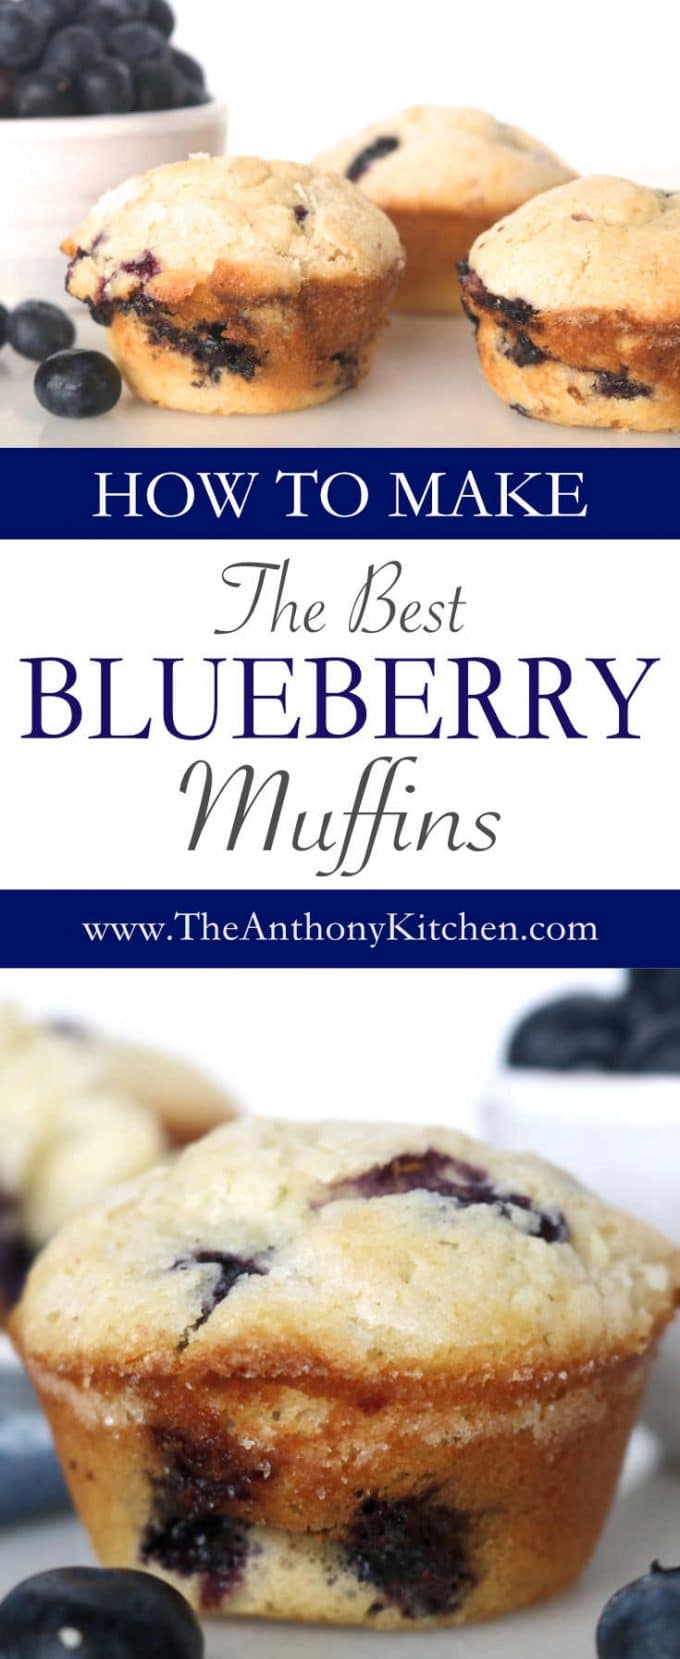 BLUEBERRY MUFFINS FROM SCRATCH